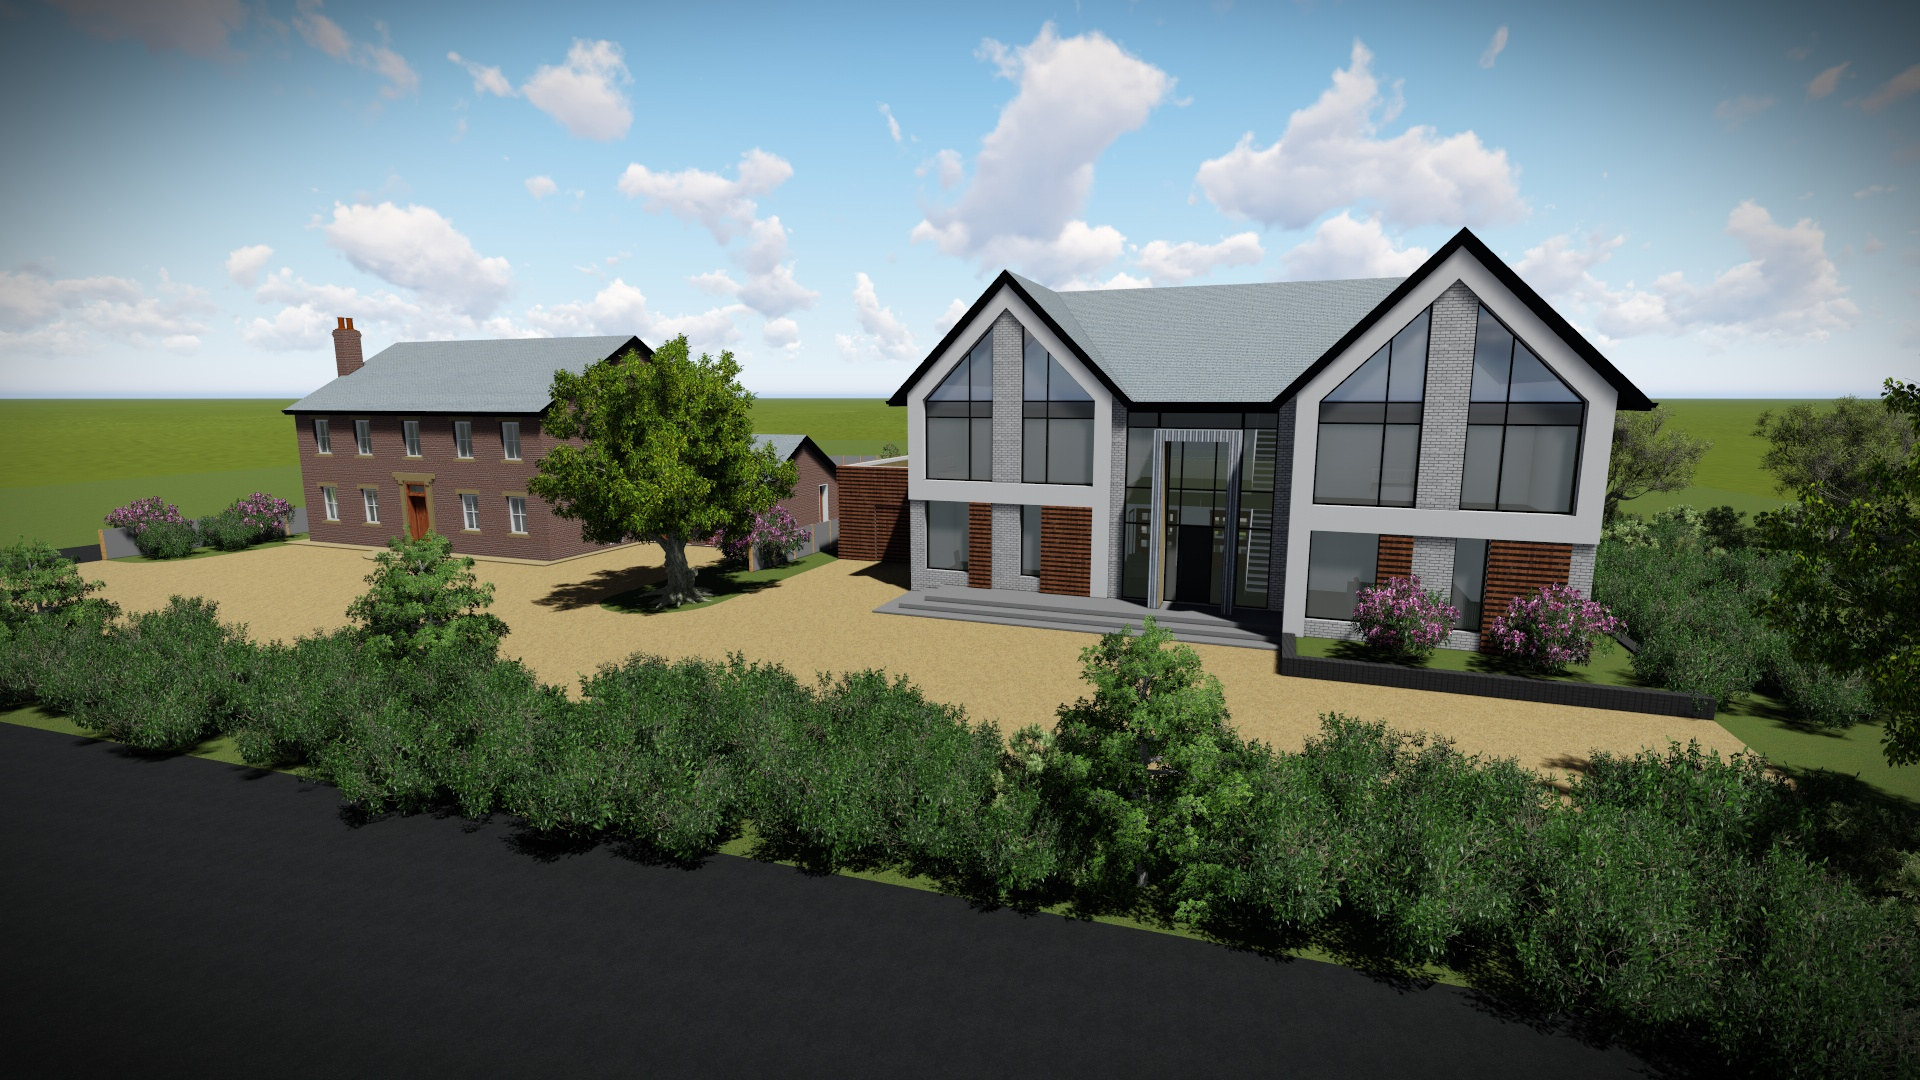 Front view design for self build development - Provided by Carter-Zub Building Consultancy